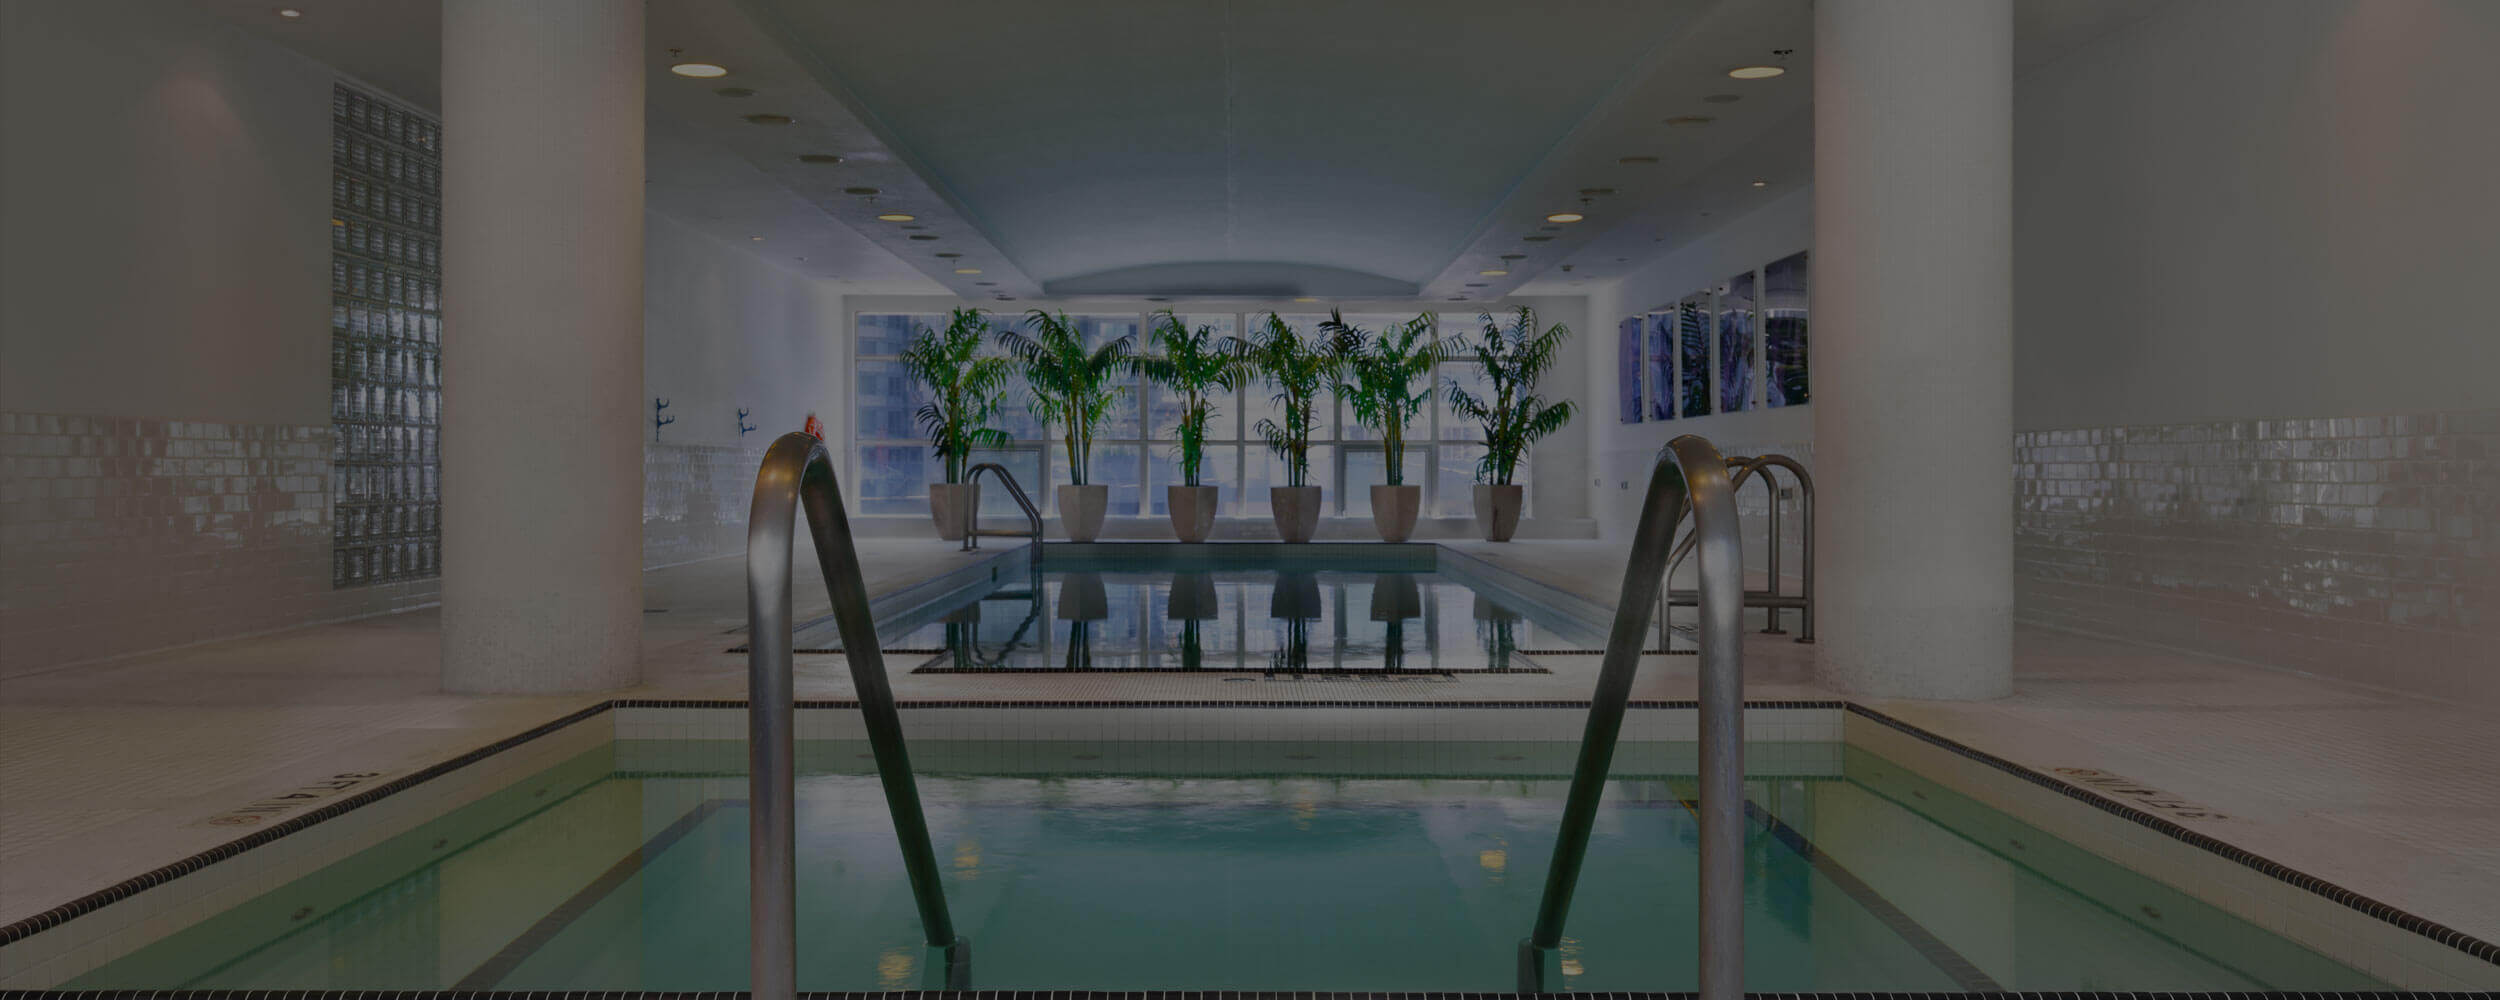 SoHo Hotel amenities renovated health club with lap pool